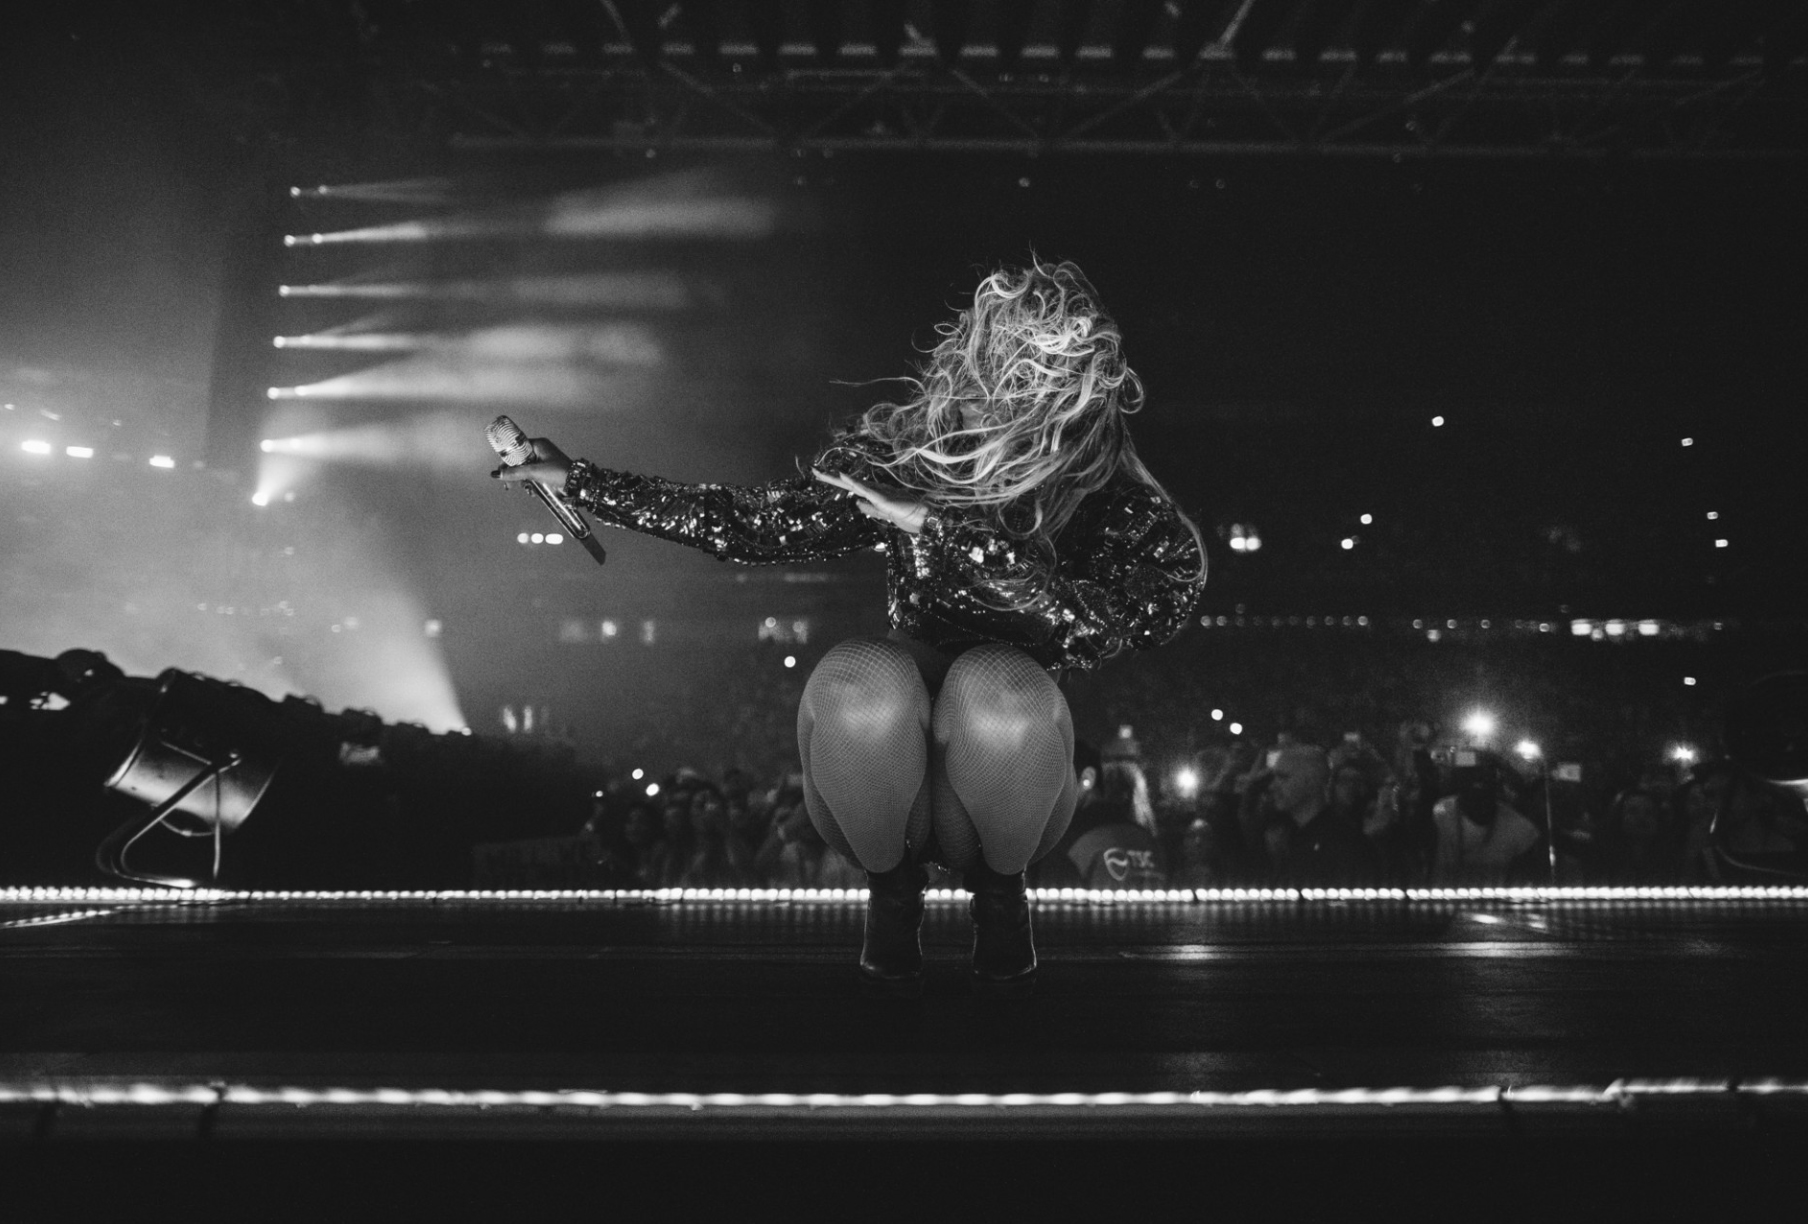 Beyoncé performs for the crowd in Amsterdam during the Formation World Tour 2016.